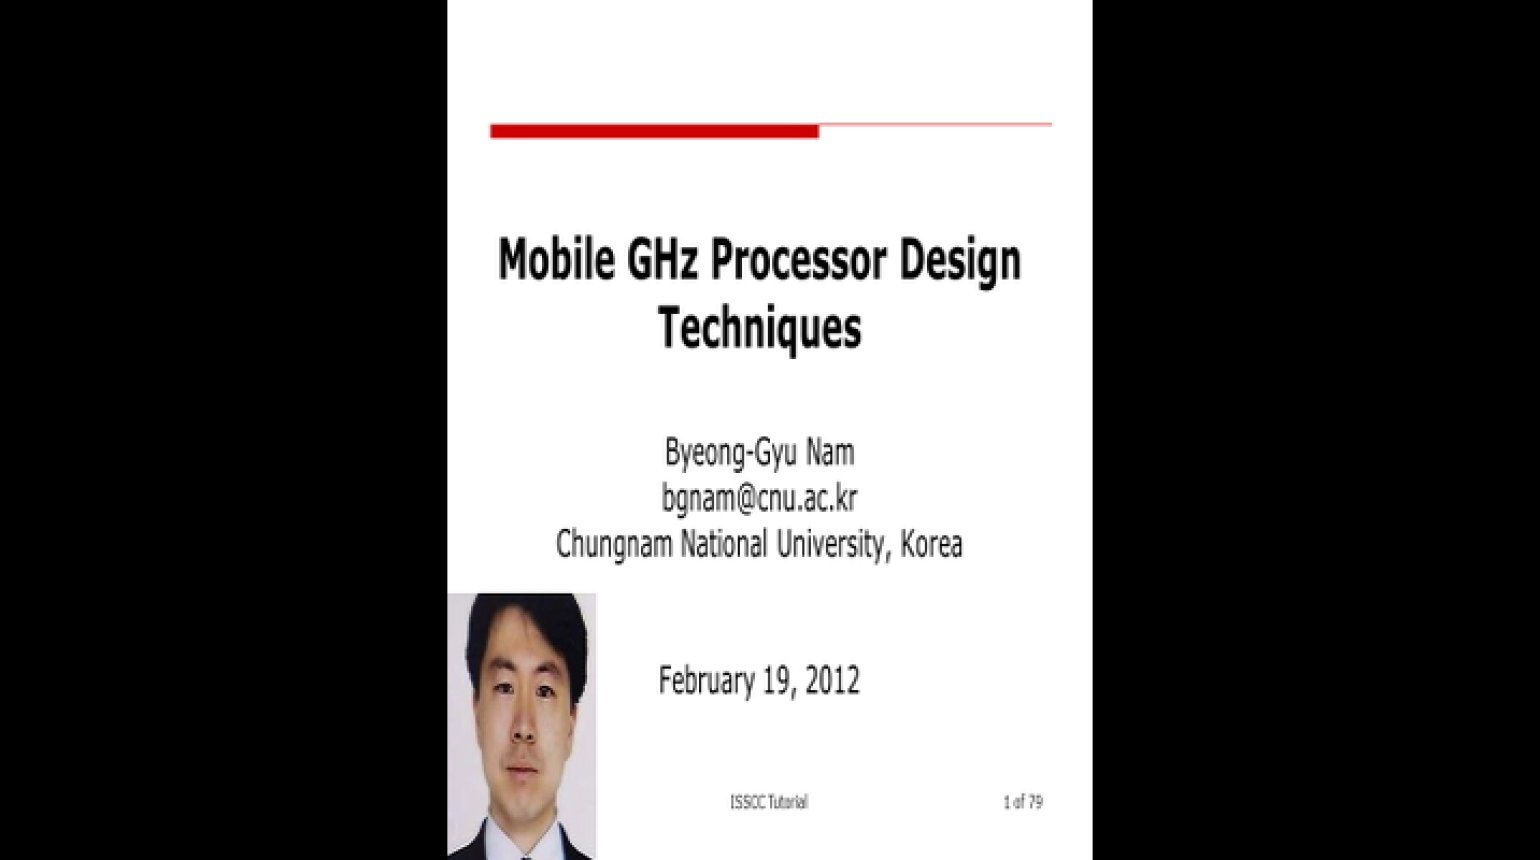 Mobile GHz Processor Design Techniques Video